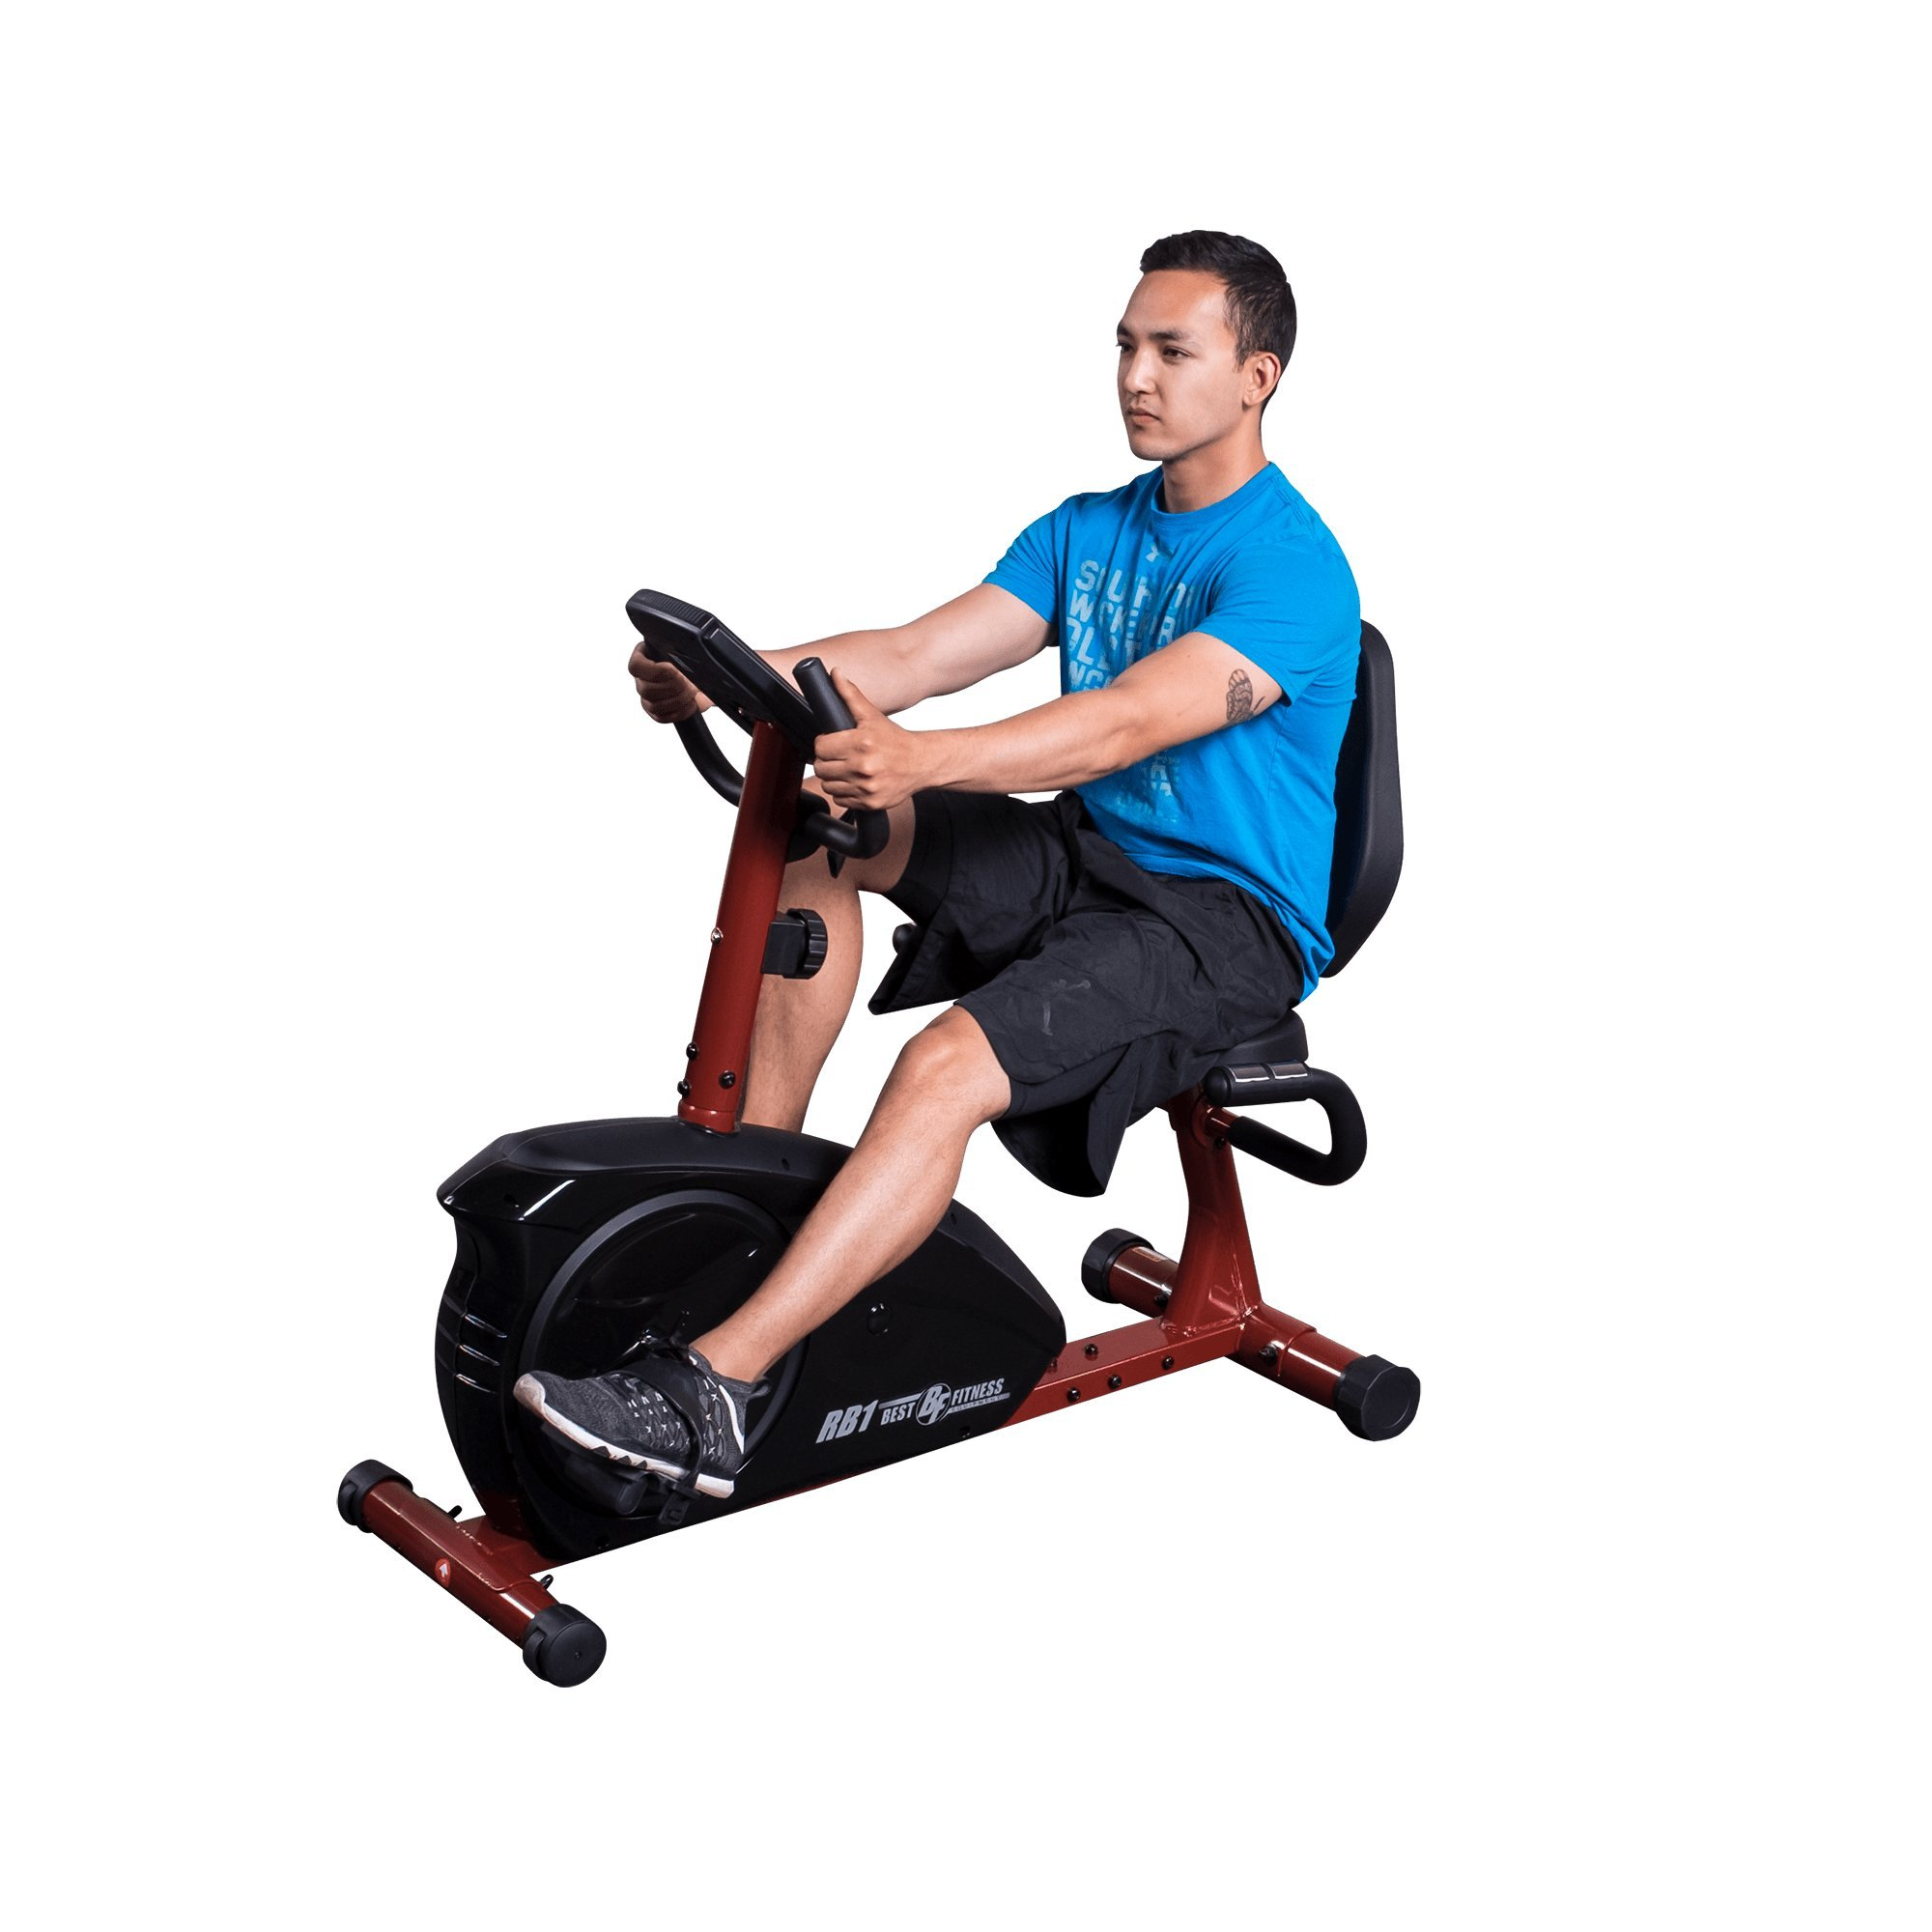 Best Fitness BFRB1 Recumbent Bike by Best Fitness (Image #2)